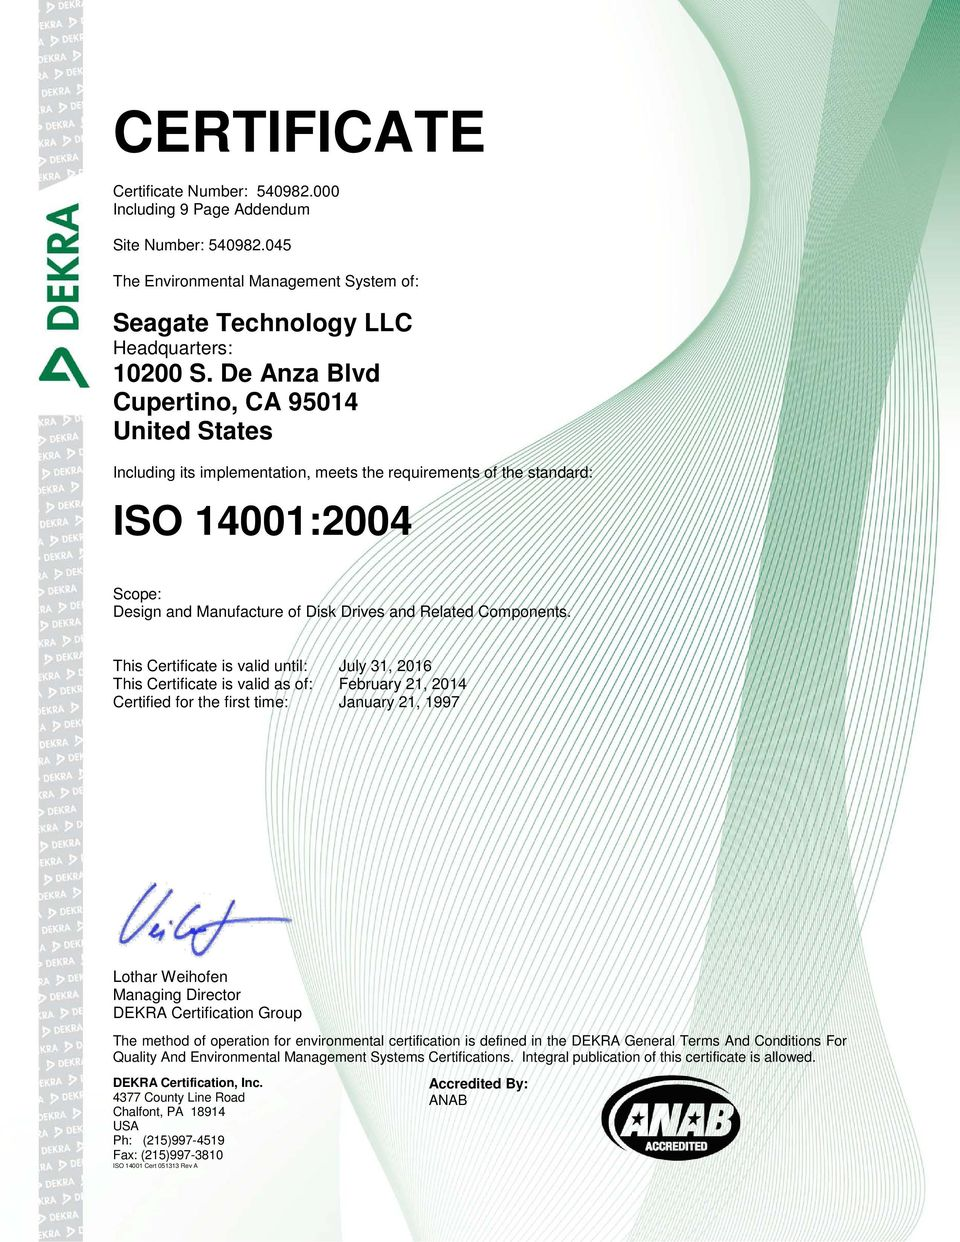 045 Seagate Technology LLC